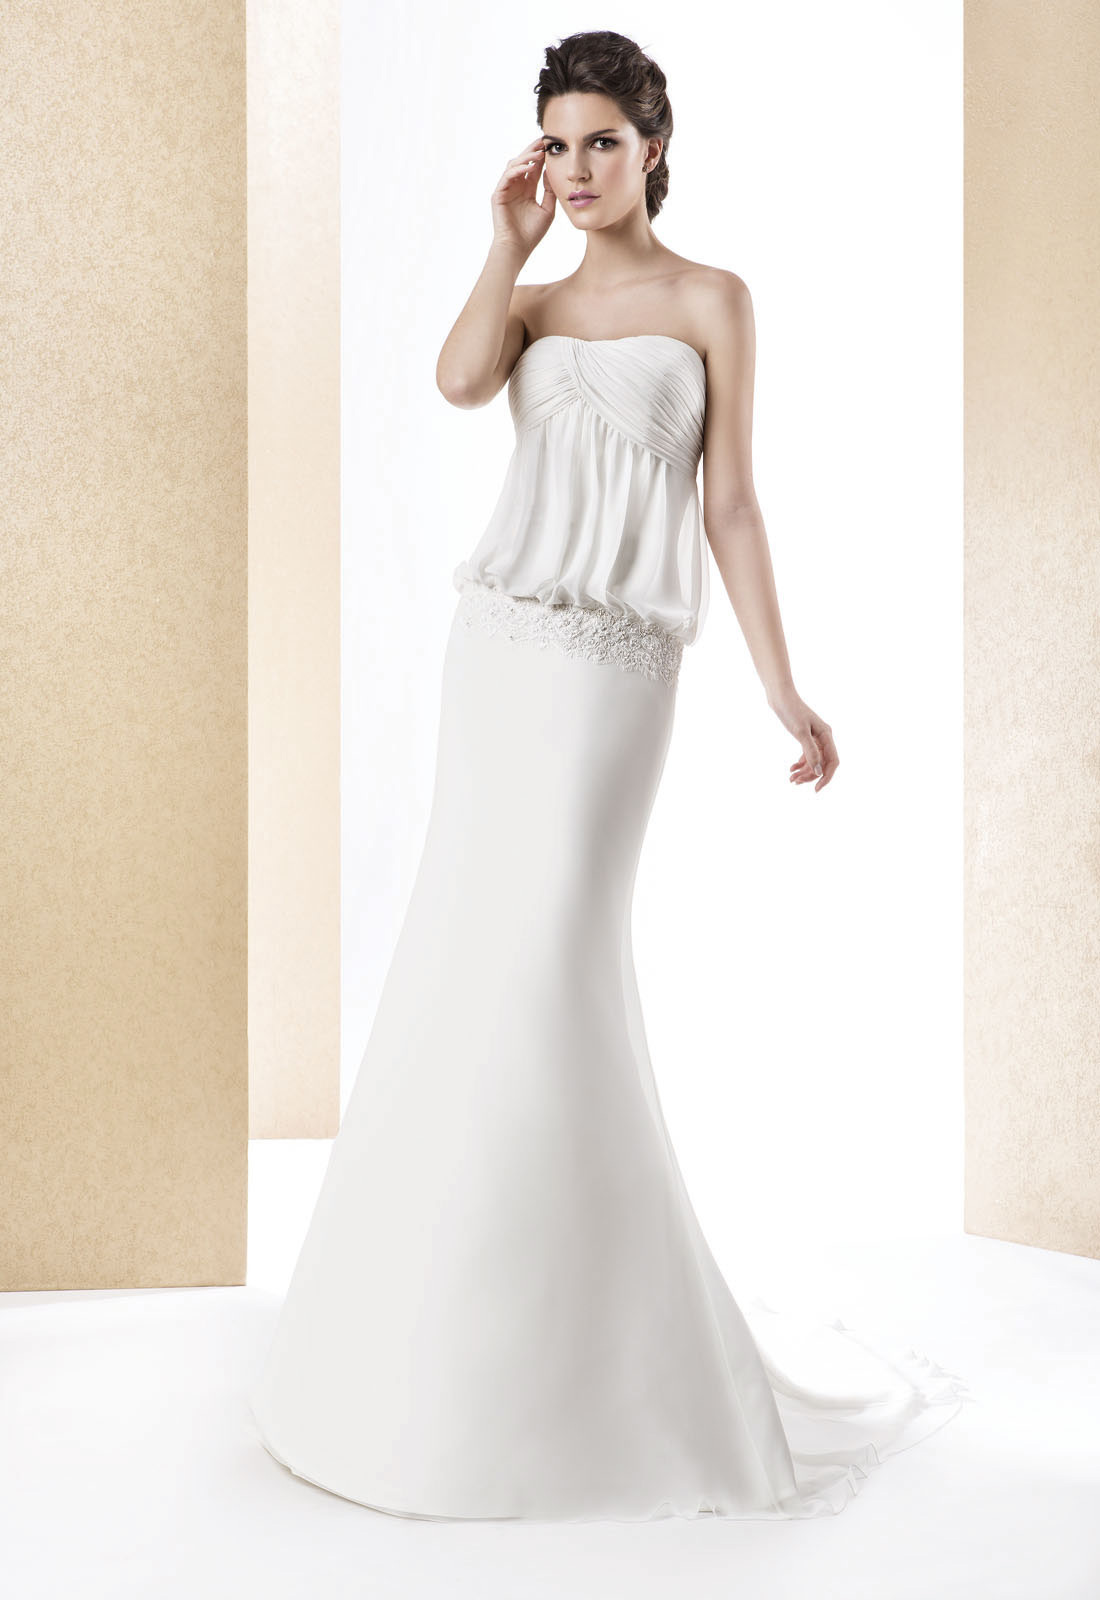 Simple Sheath/Column Strapless Beading Lace Sweep/Brush Train Chiffon Wedding Dresses